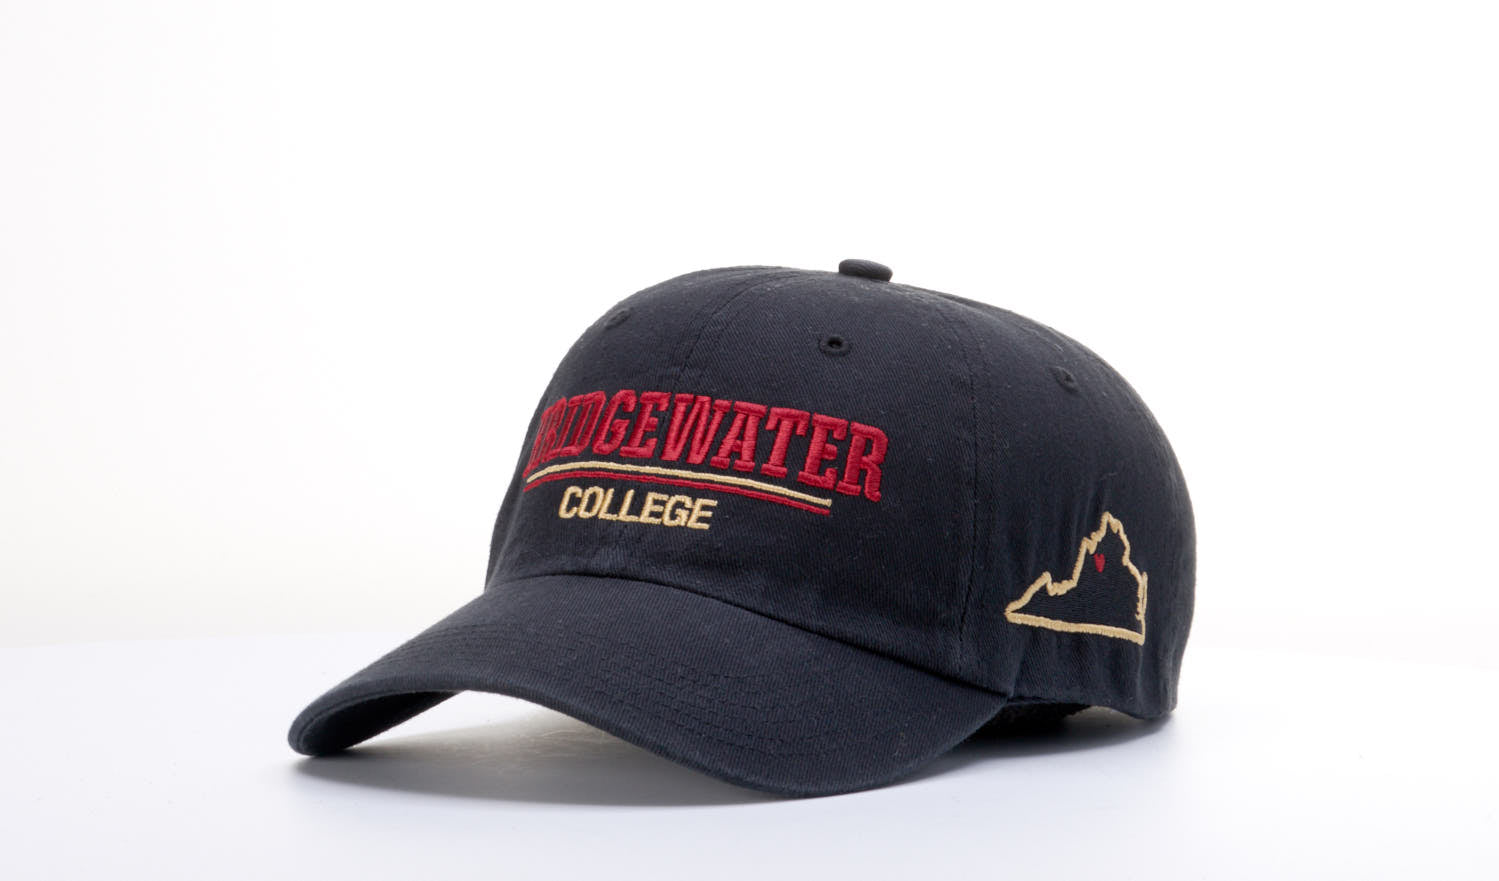 Bridgewater College Richardson Black Hat